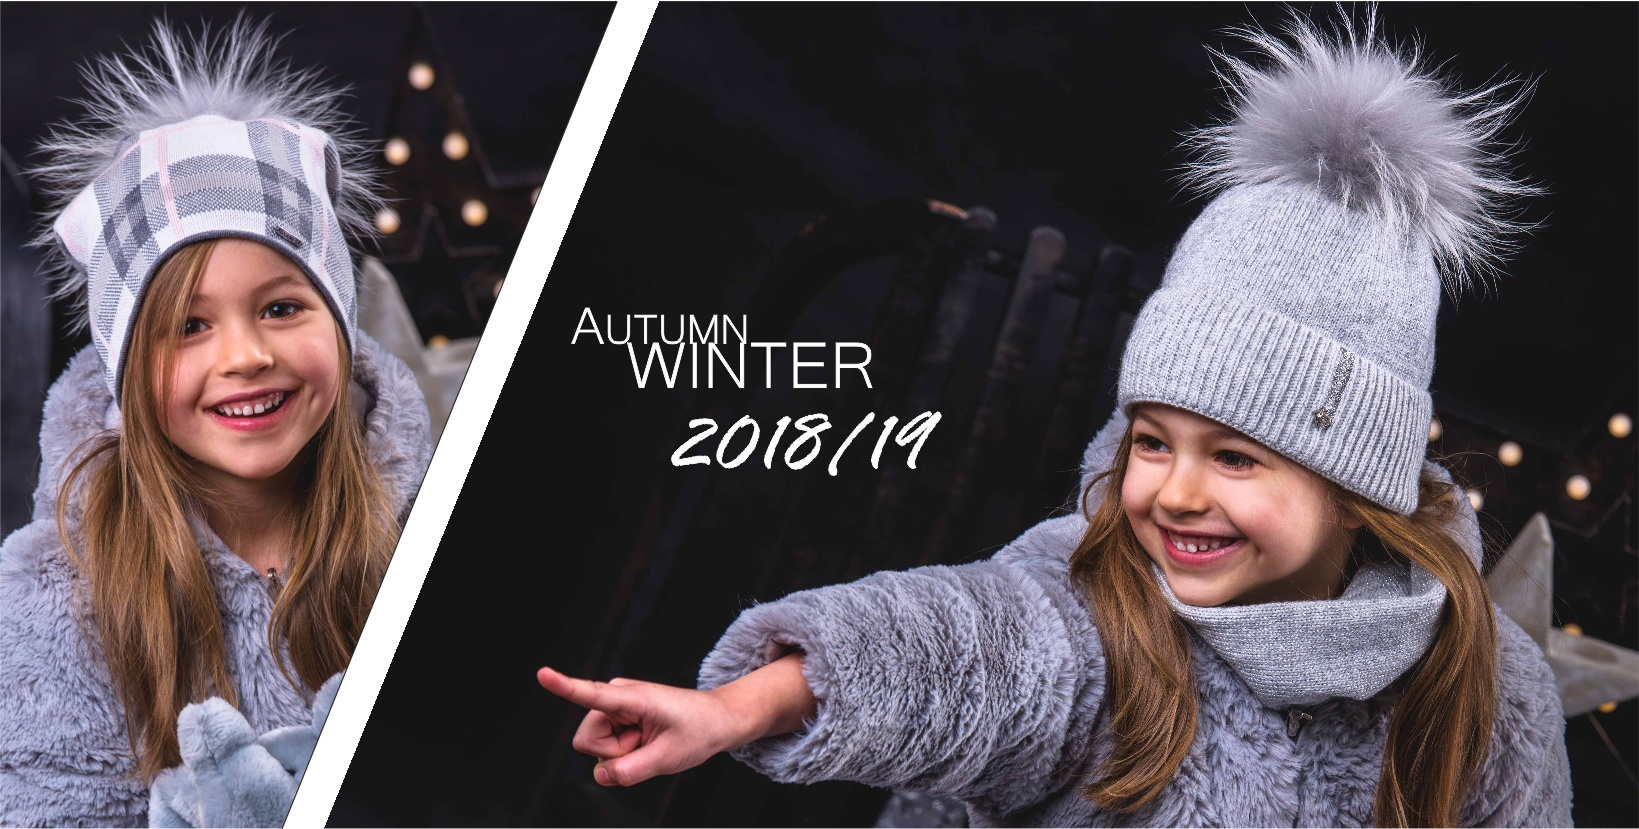 winter-2018-2019-hats-fashion-for-kids-jamiks